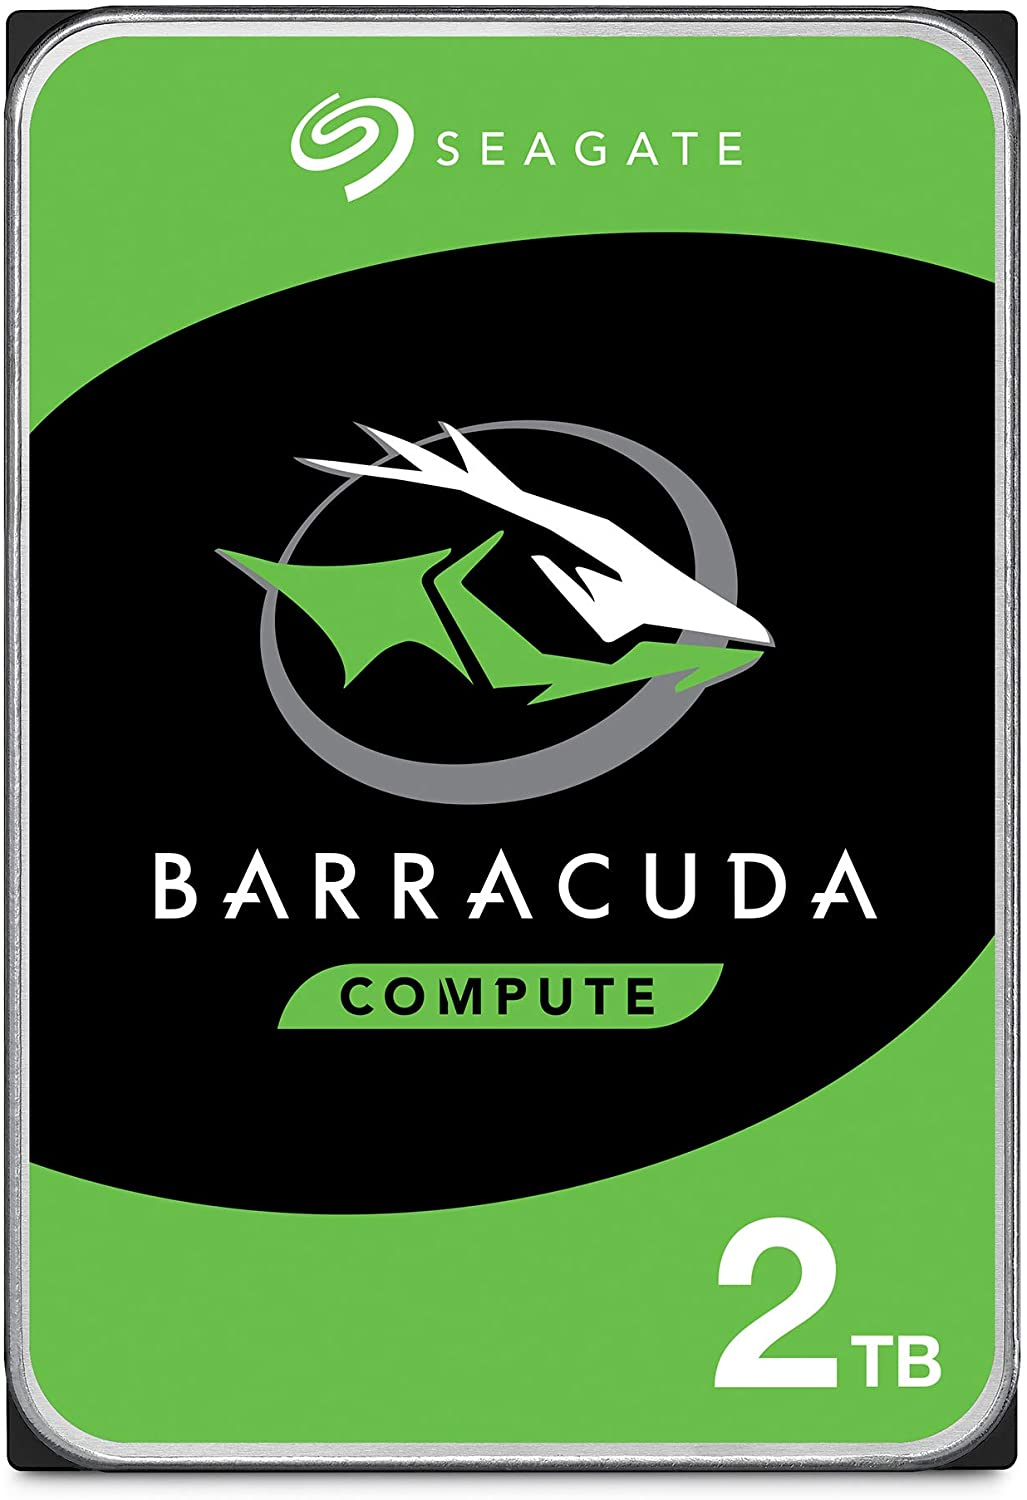 Seagate BarraCuda 2TB Internal Hard Drive HDD  35 Inch SATA 6Gbs 7200 RPM 256MB Cache 35Inch  Frustration Free Packaging ST2000DM008 at Kapruka Online for specialGifts